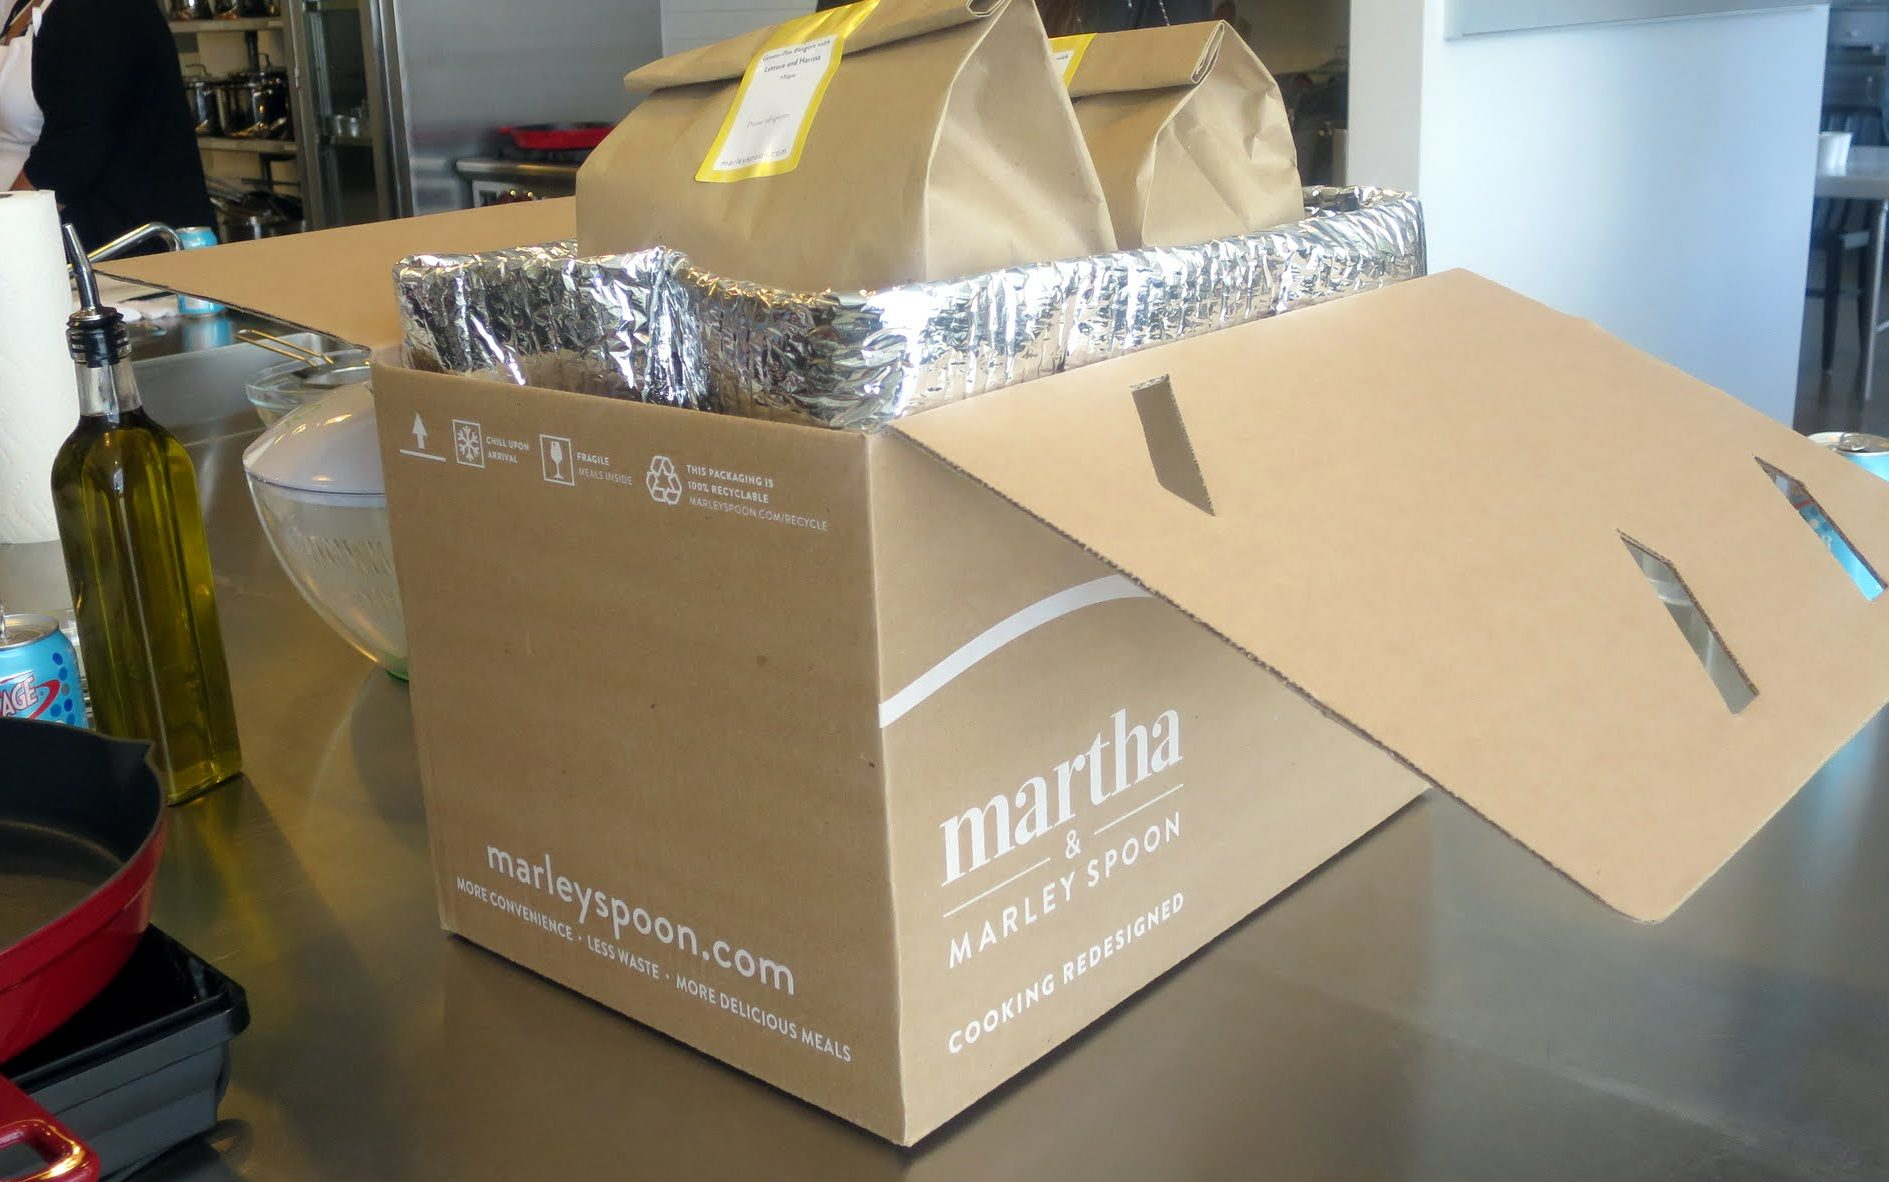 Meals like these Martha Marley Spoon fajitas come in an insulated box for easy retrieval.